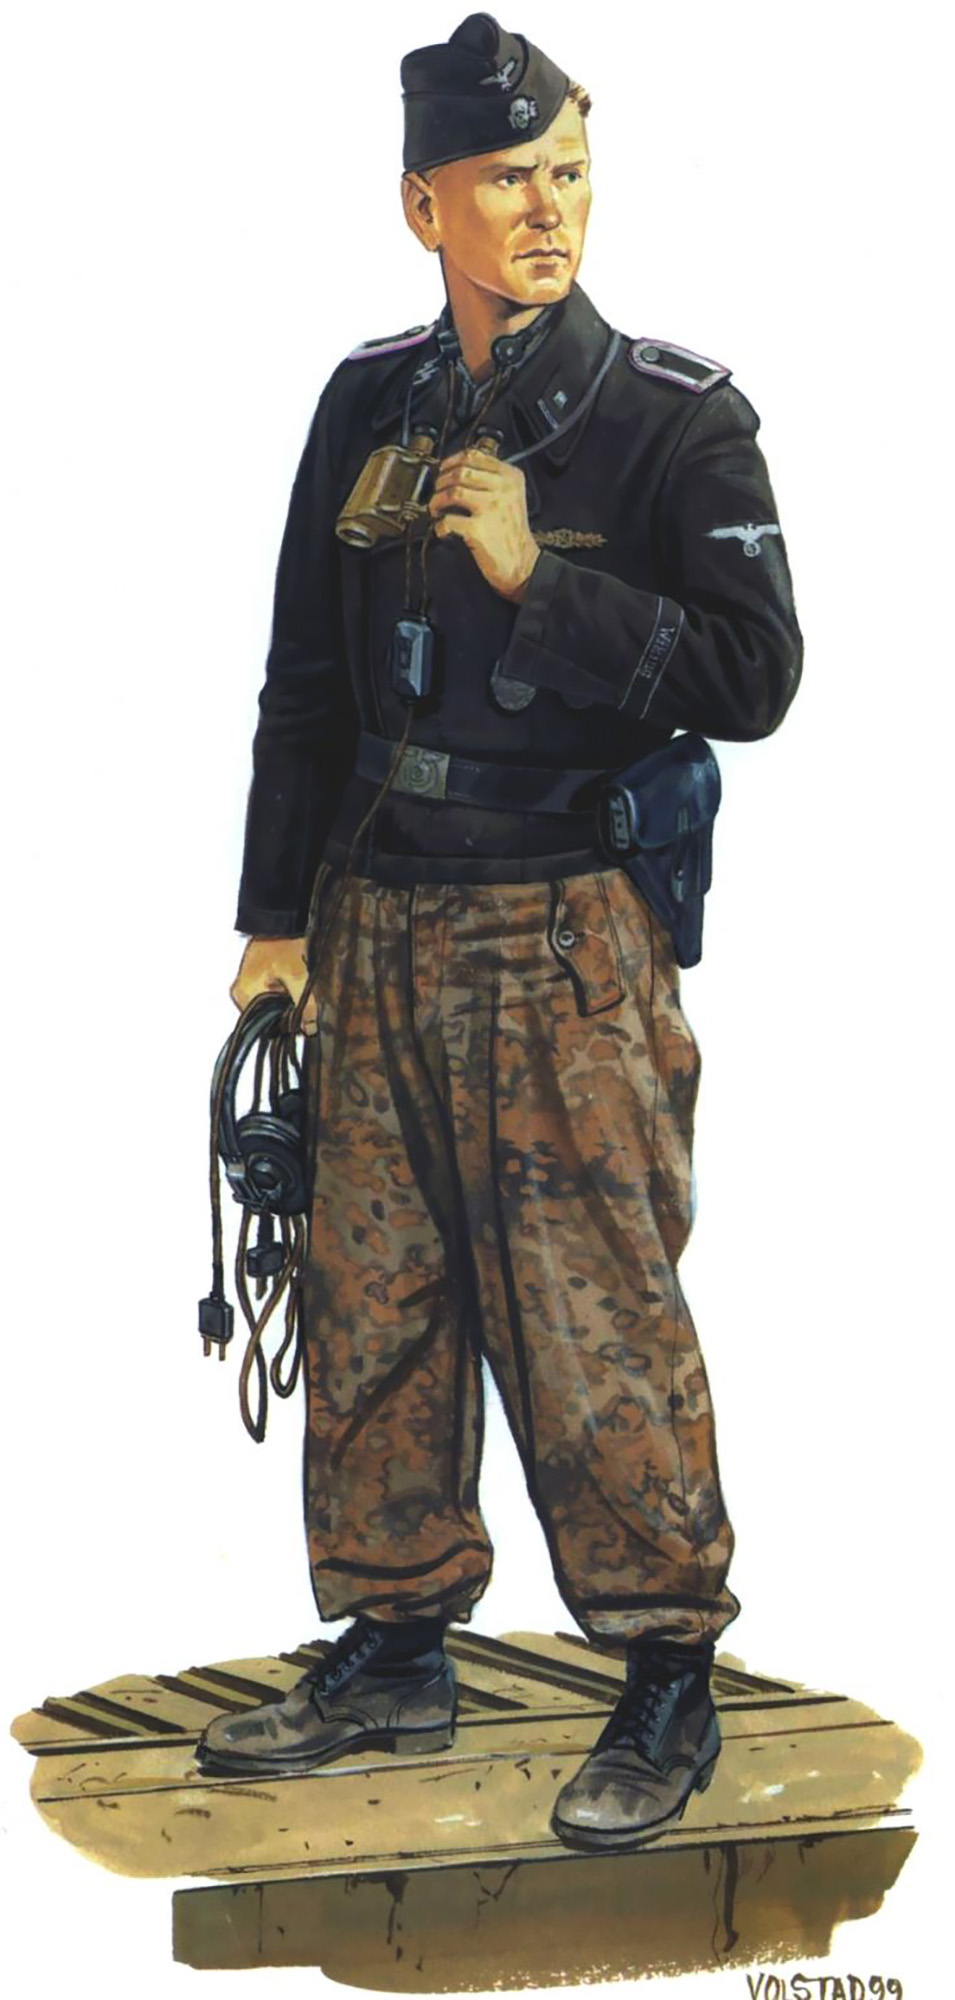 Typical outfit of the Panzer crews